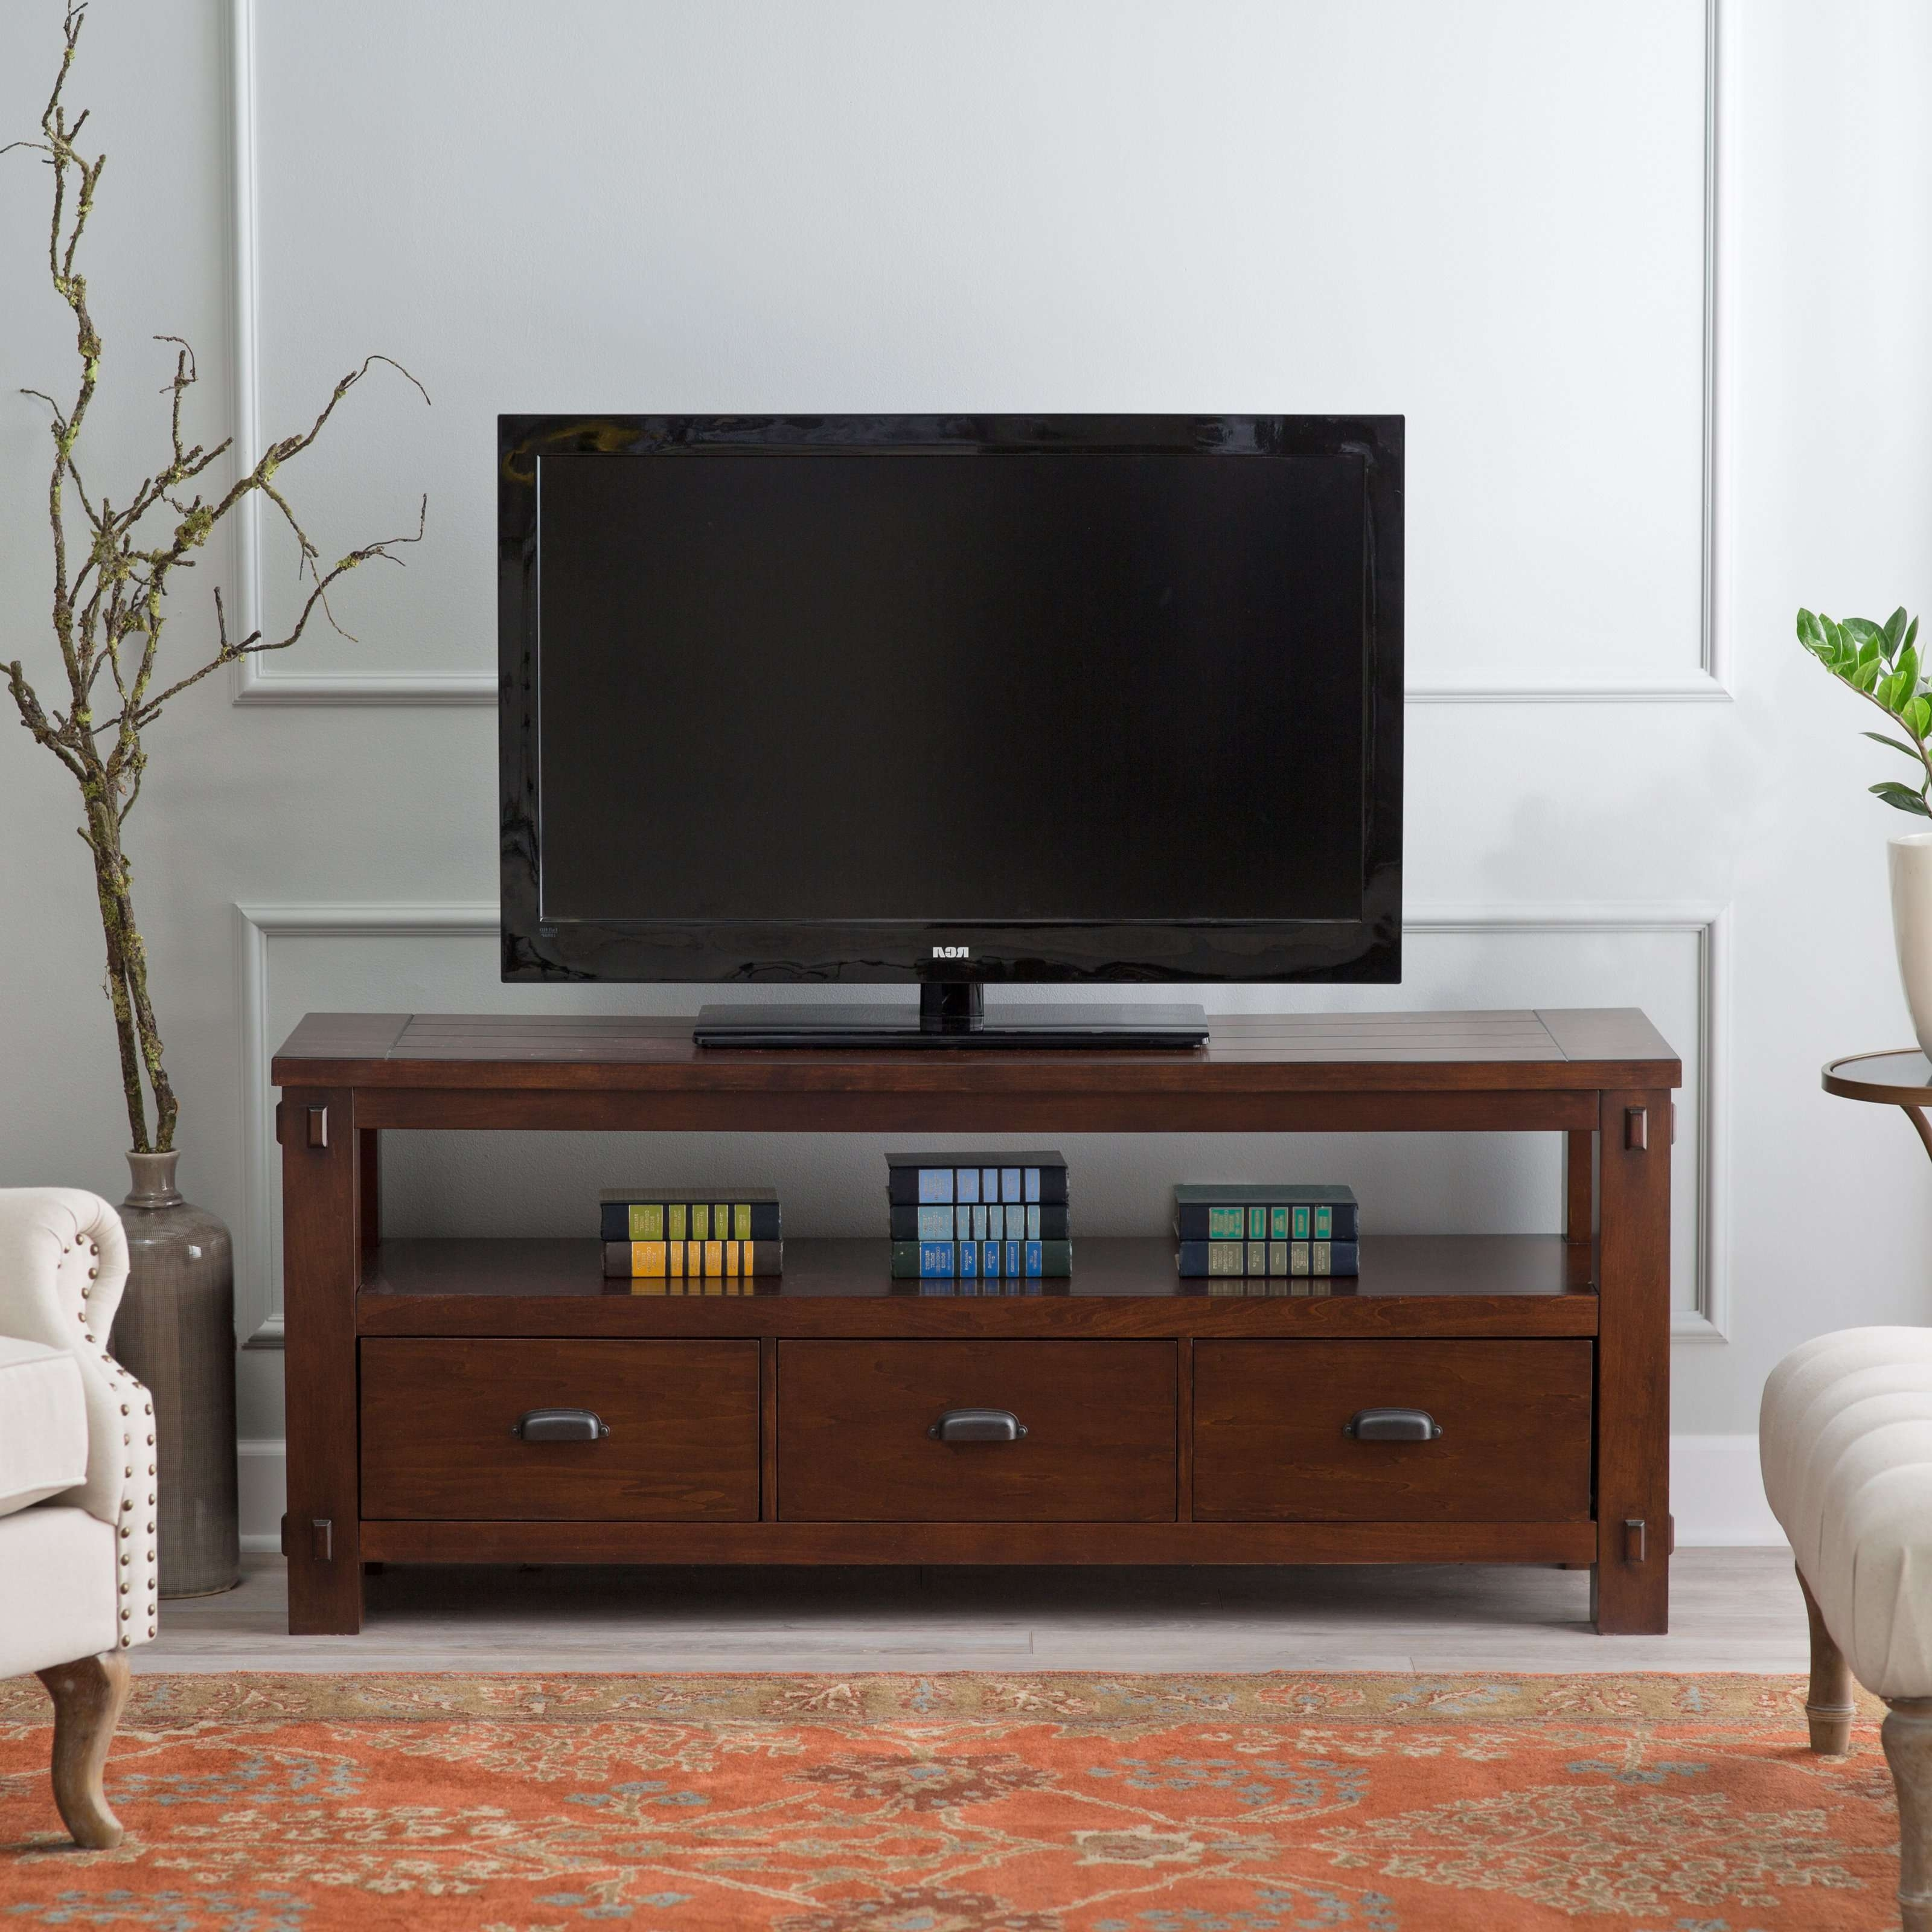 Tv Stand : Staggering Low Long Tv Stand Photo Inspirations Stands With Long Tv Stands Furniture (View 14 of 15)